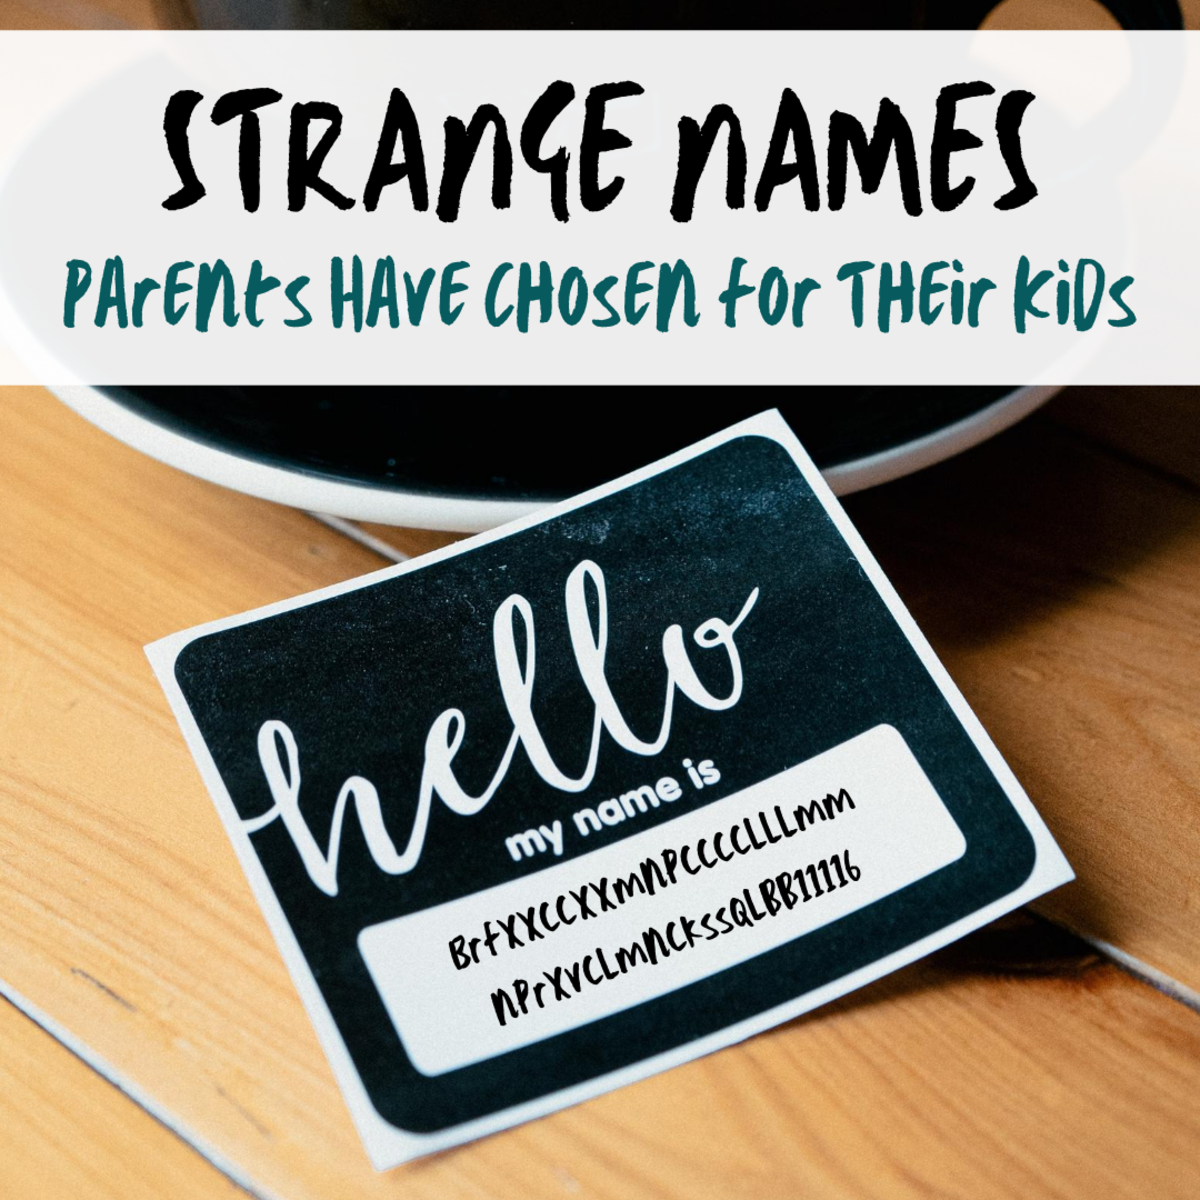 What makes a name strange is arguable, but some names definitely stand out more than others. (Yes, the name above is an actual name that parents tried to give their son.)